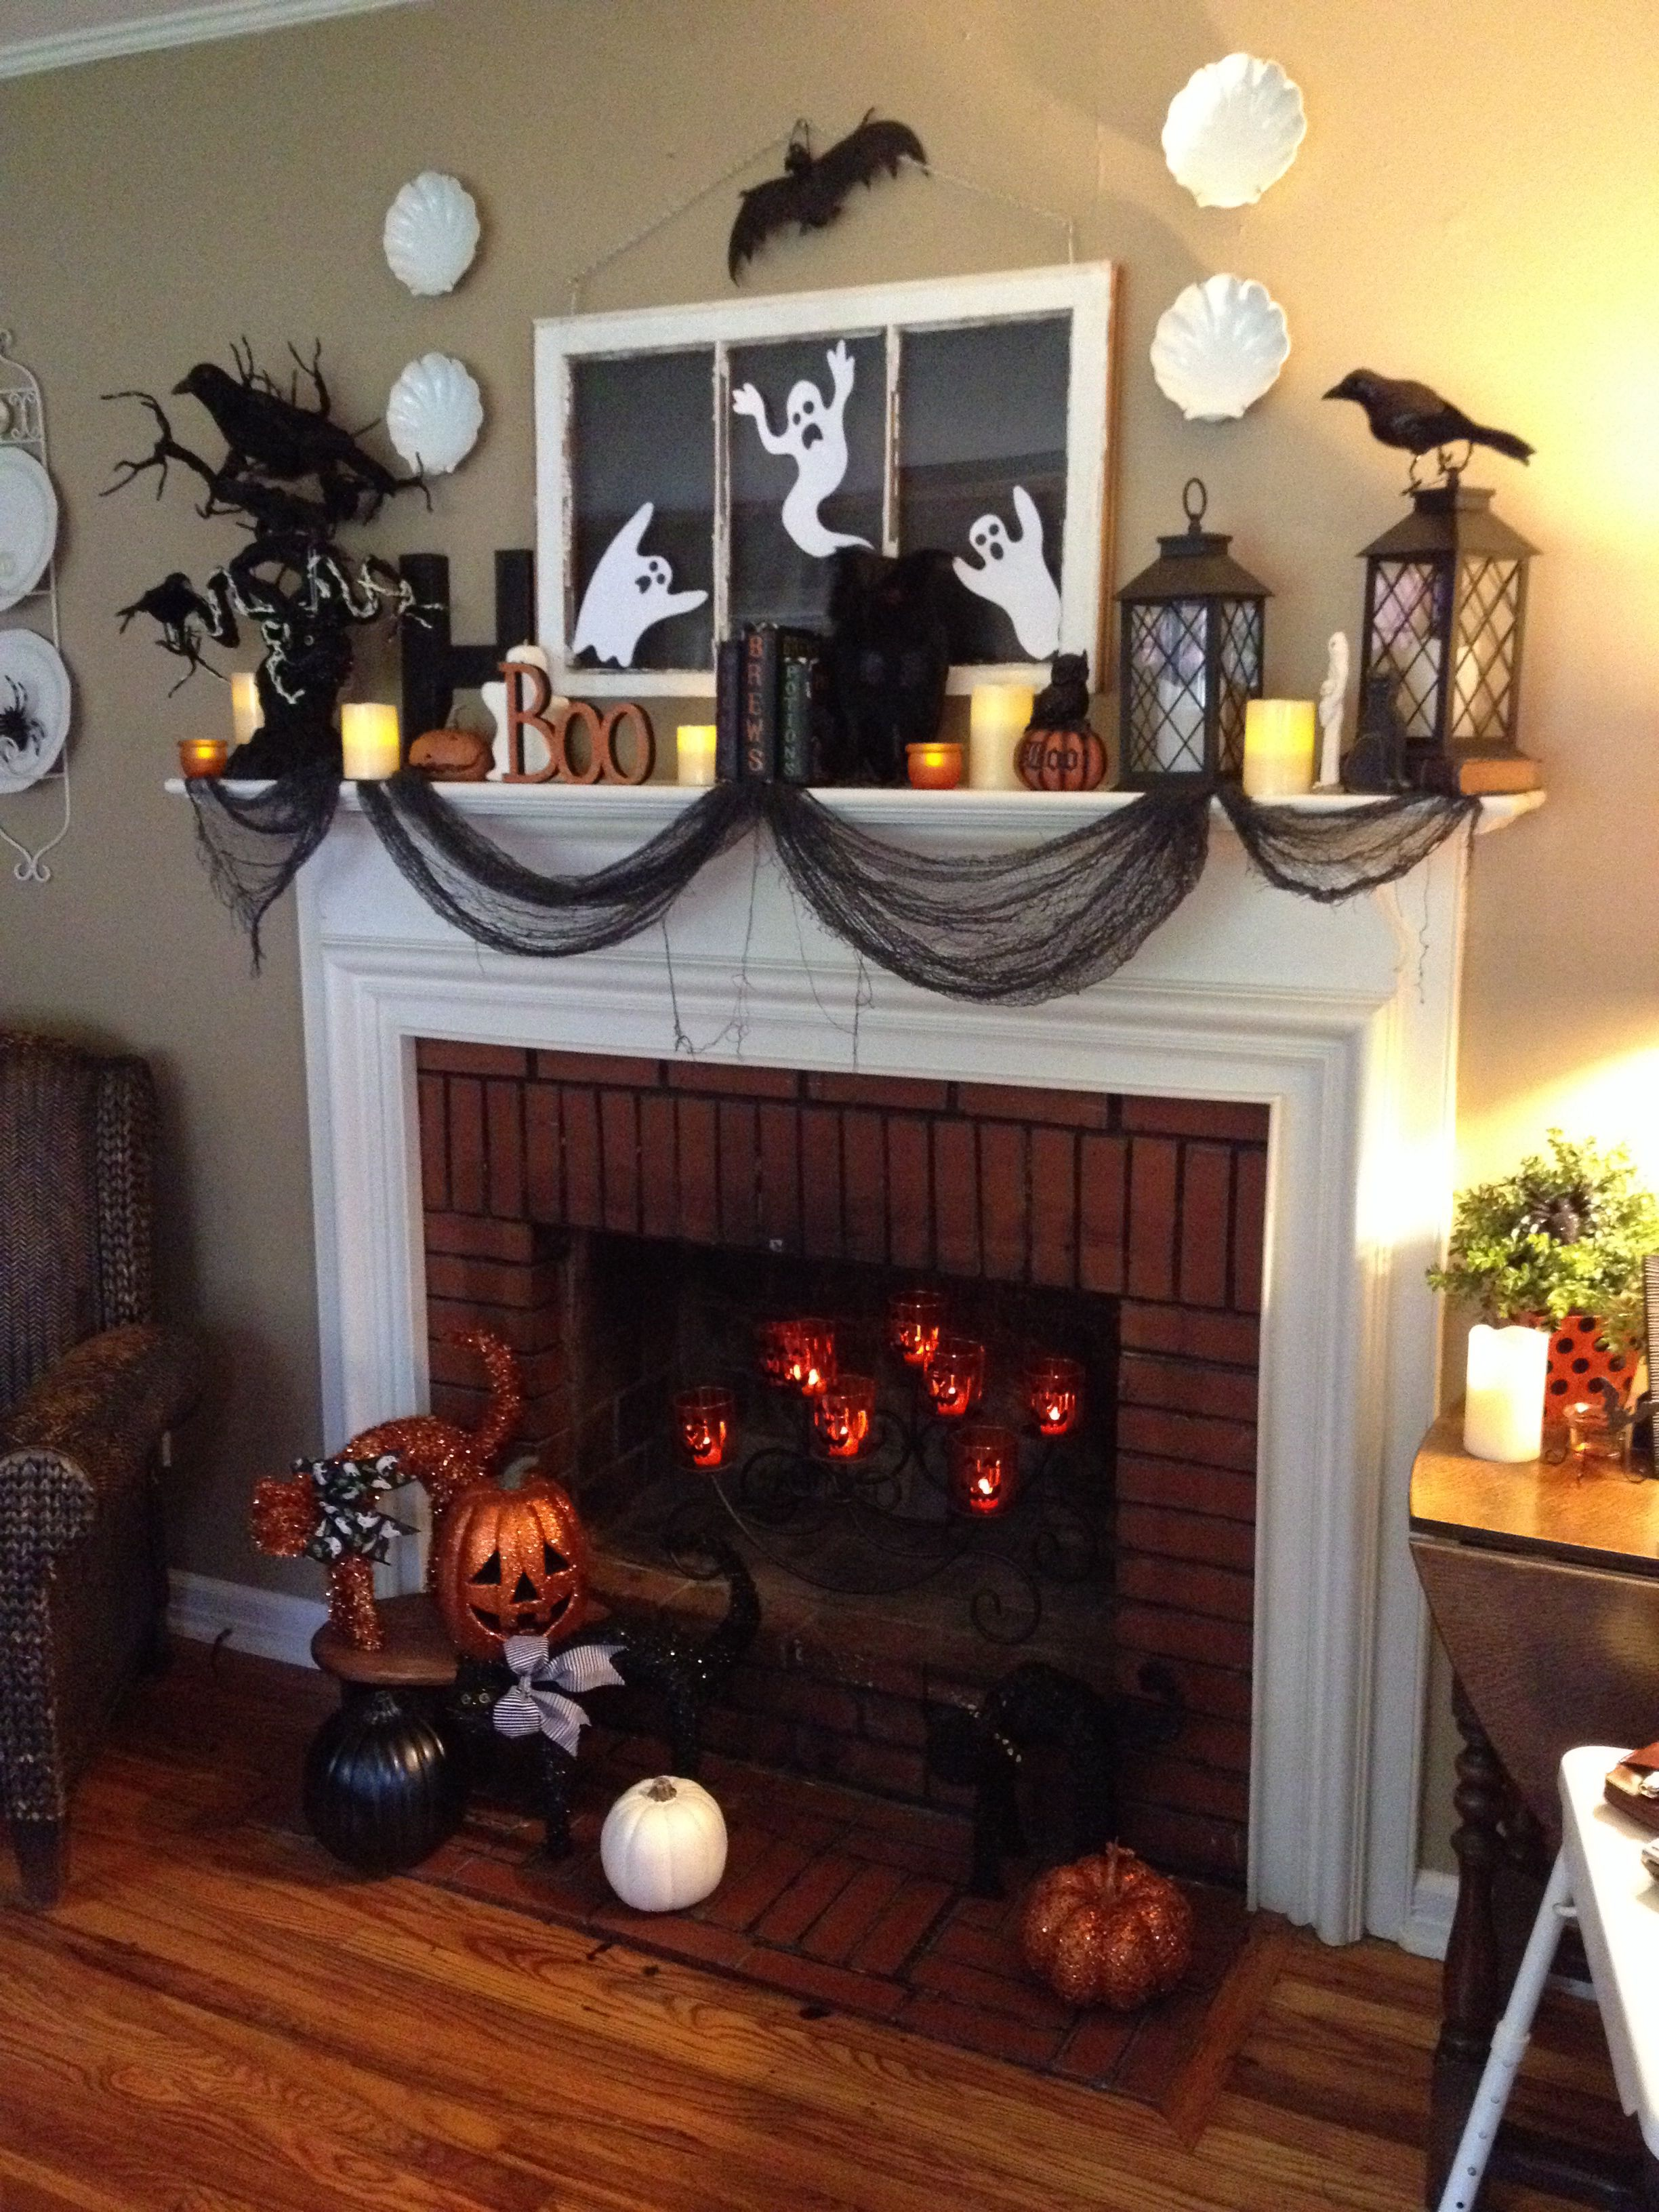 15 Halloween Mantle Decorating Ideas I especially love the jackolanterns inside the fireplace